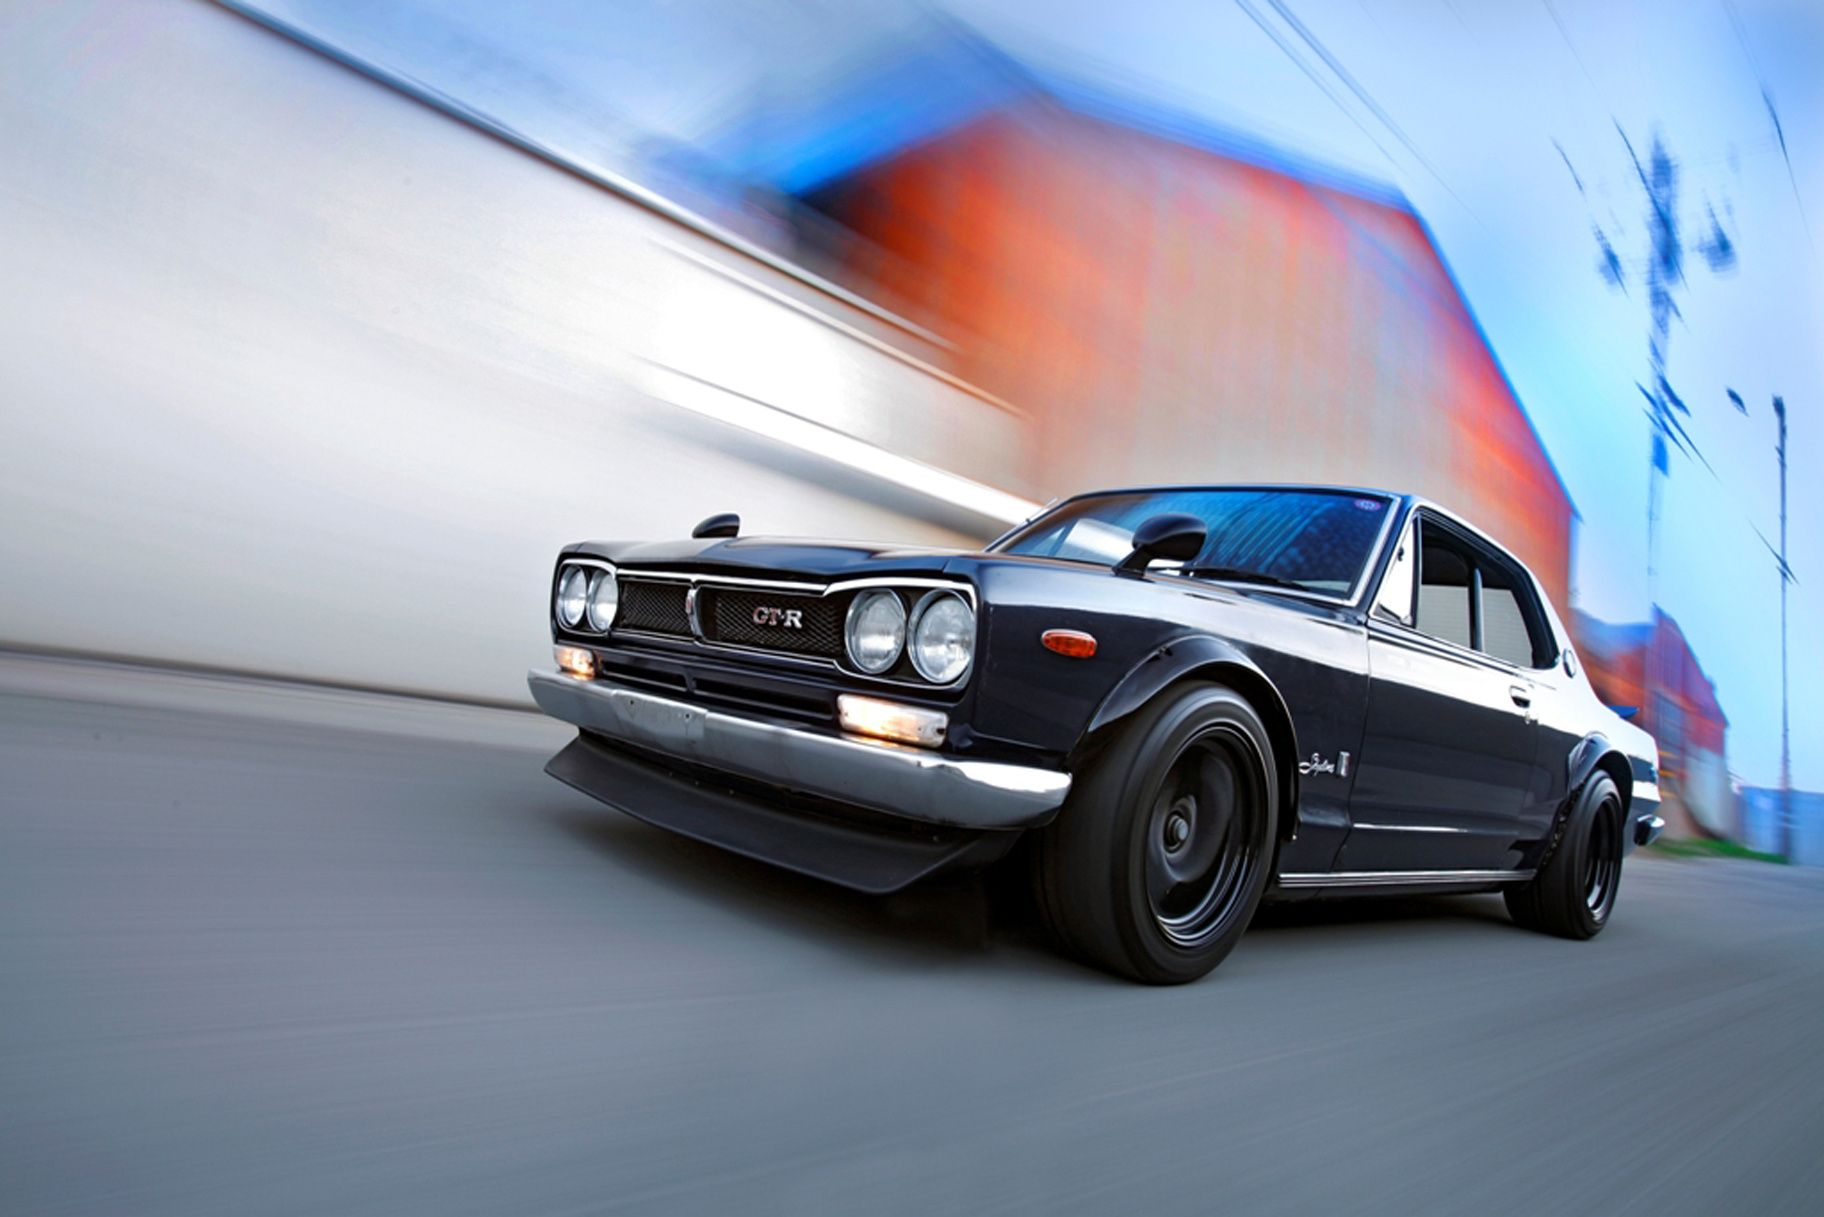 Old school JDM Nissan Skyline GTR | JDM Tuner classifieds at JDMads ...